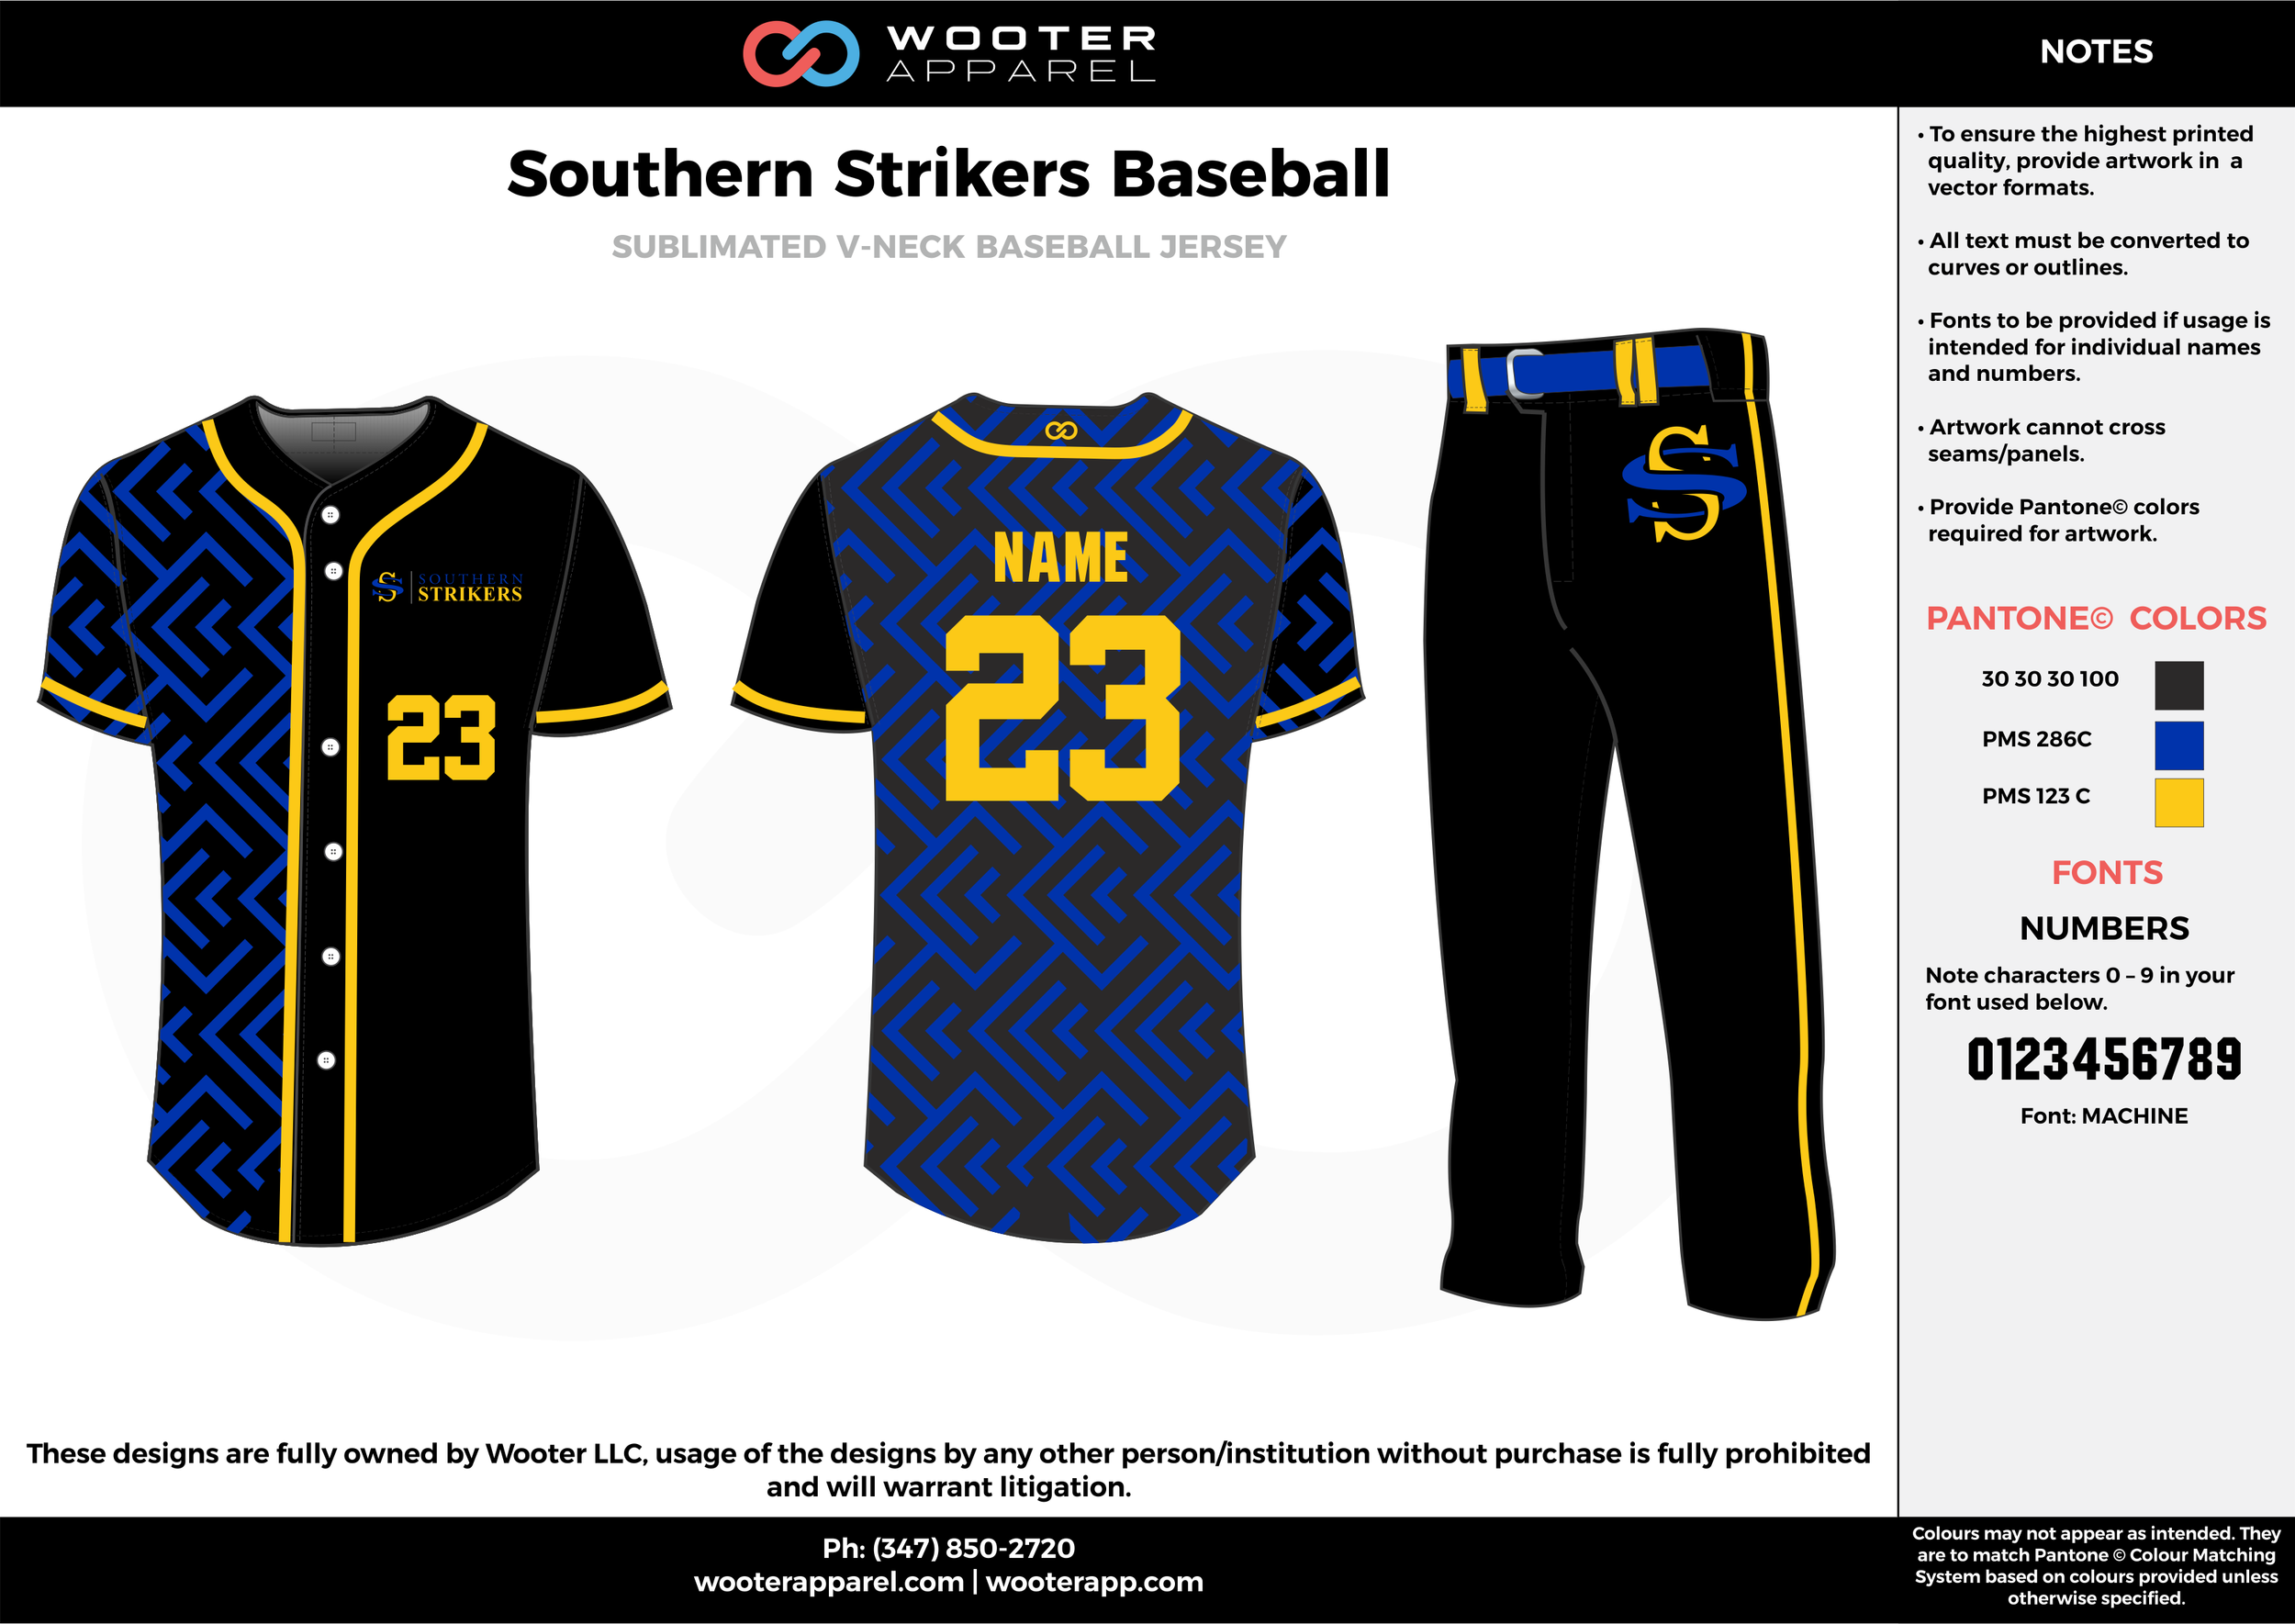 SOUTHERN STRIKERS BASEBALL black blue yellow baseball uniforms jerseys pants